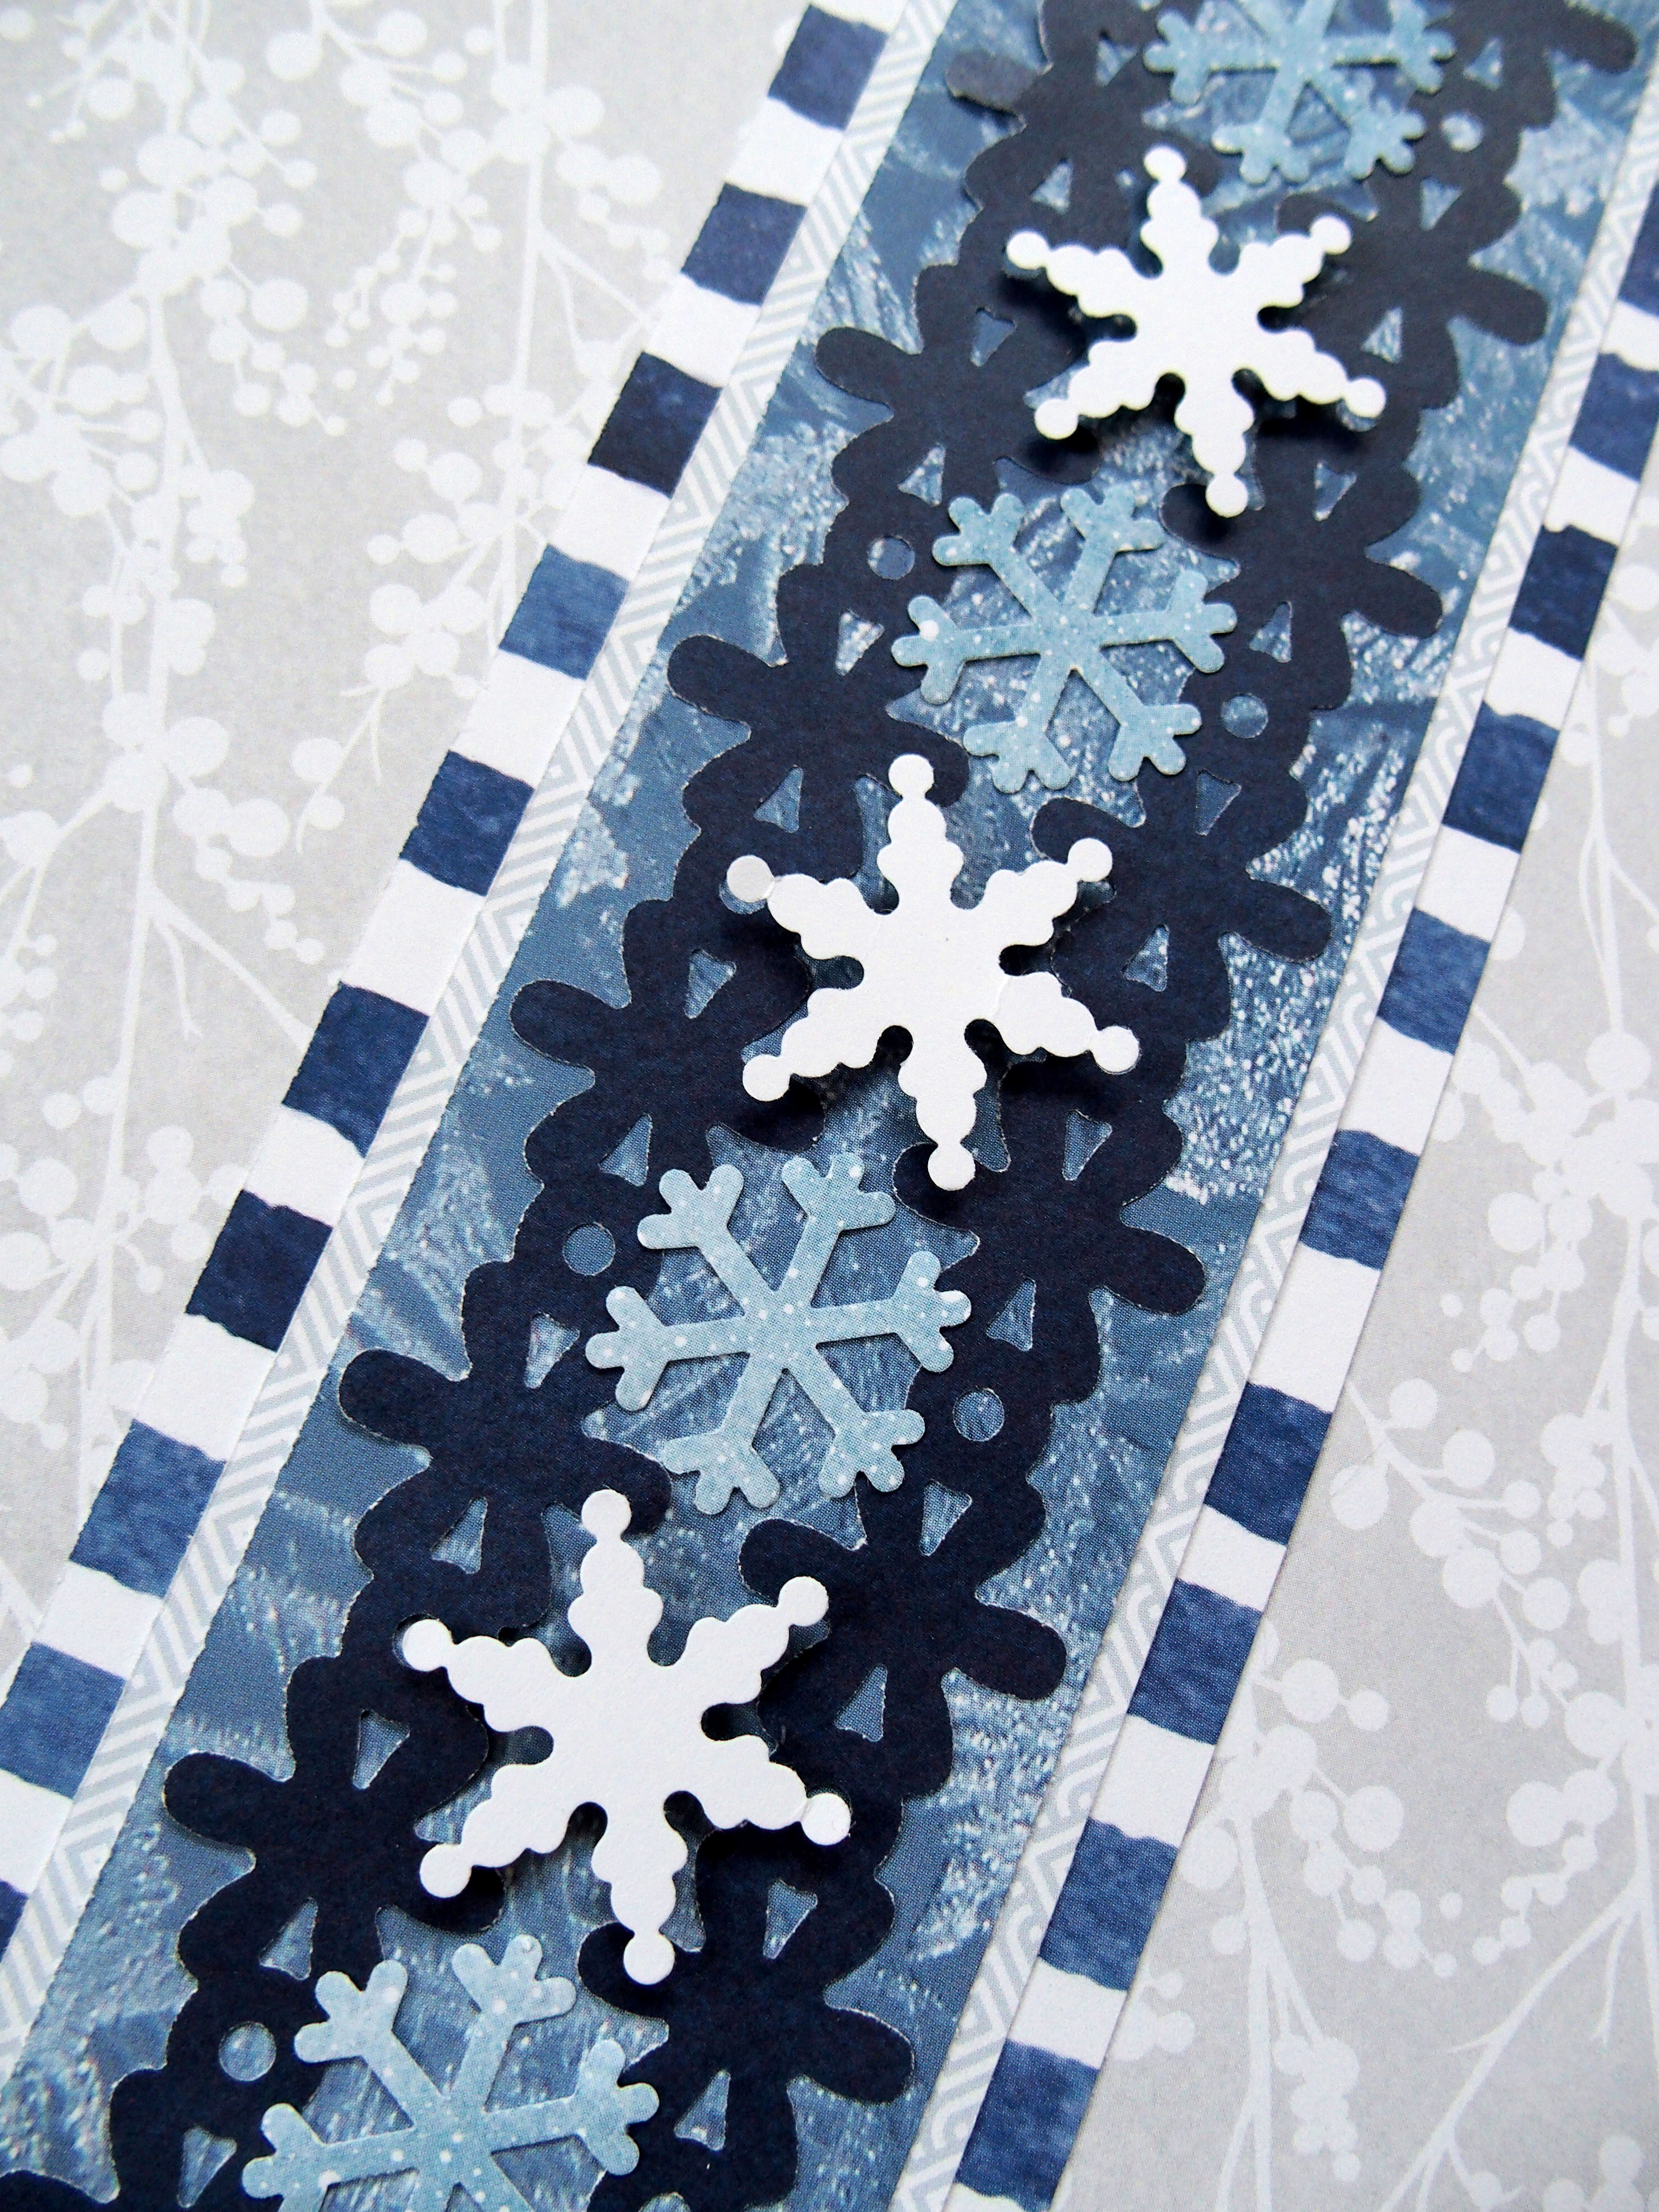 Wintery-Glacier-Snowflake-Border-Creative-Memories